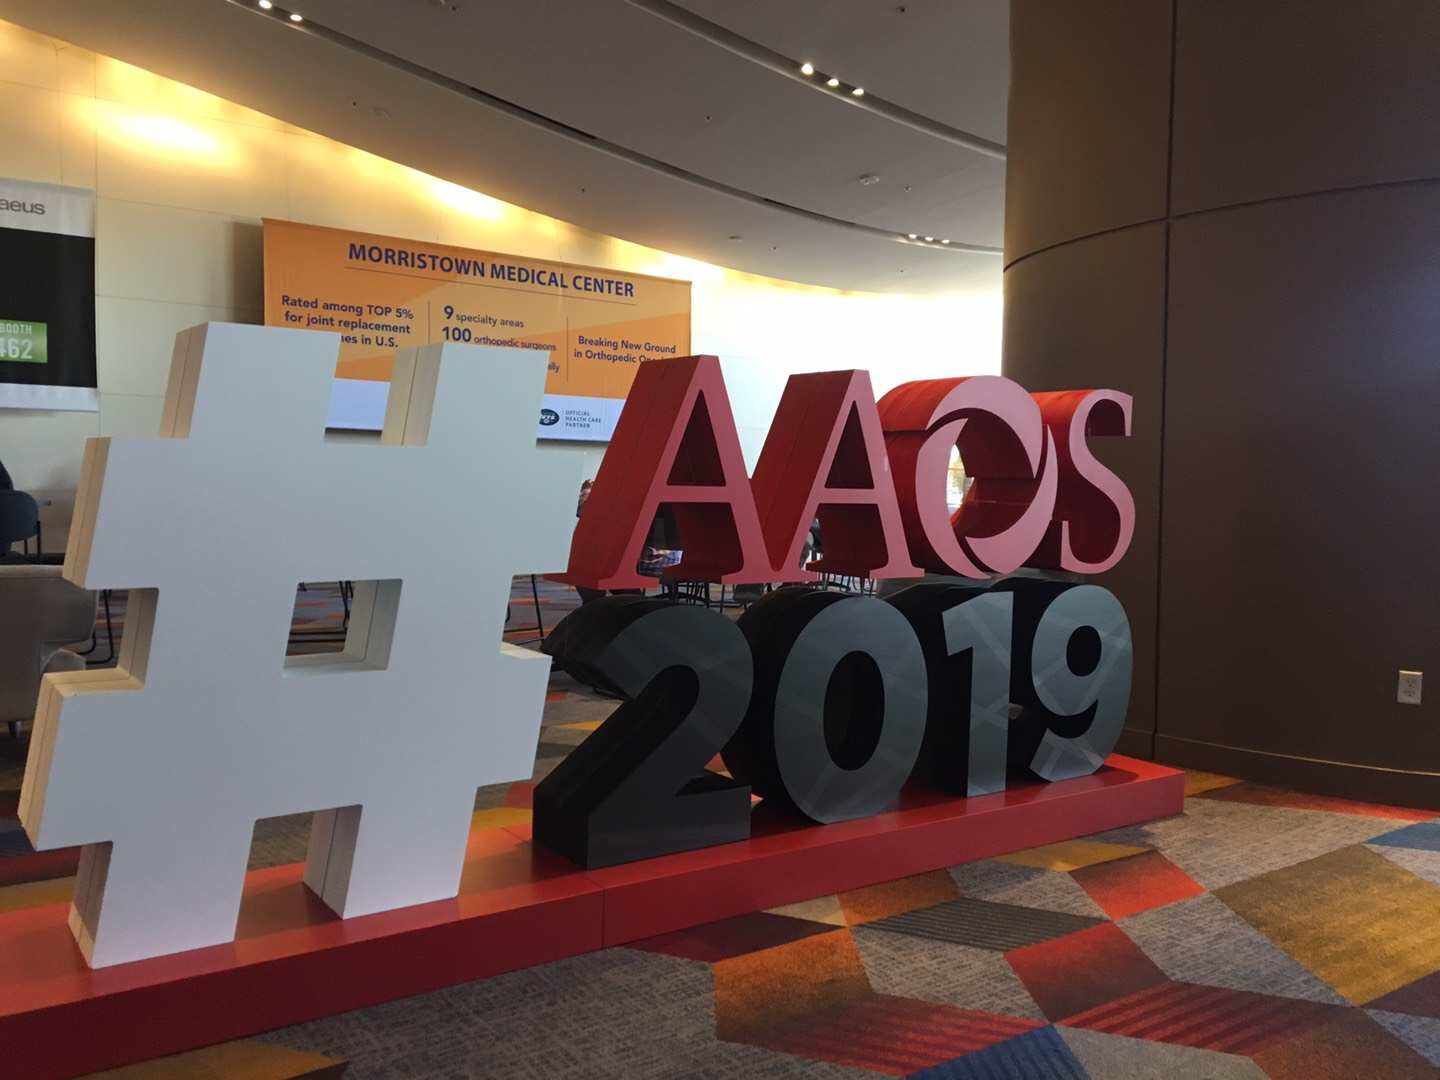 AAOS Annual Meeting 2019